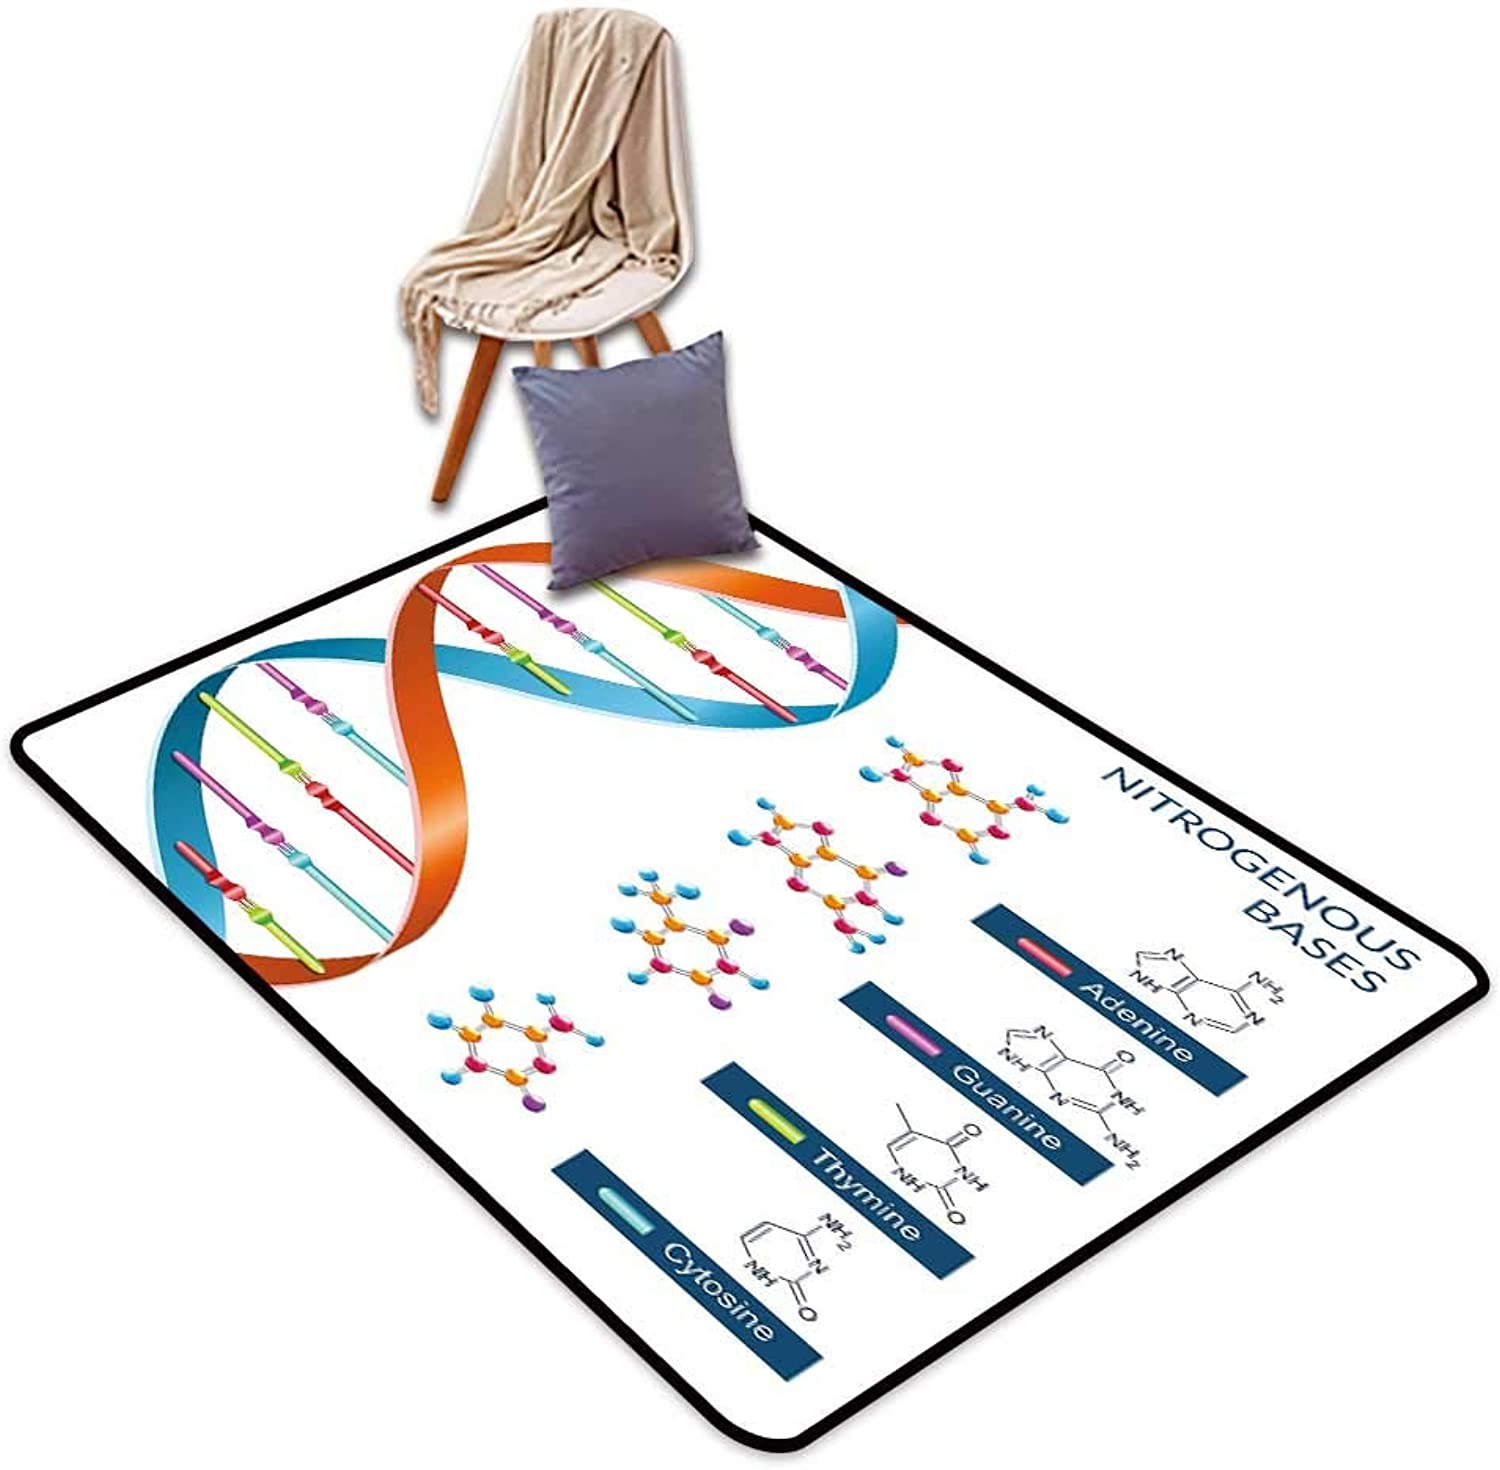 Indoor Super Absorbs Mud Doormat Educational DNA Bases Chemistry Biochemistry Biotechnology Science Spiral Symbol Genetic W4'xL6' Suitable for Family